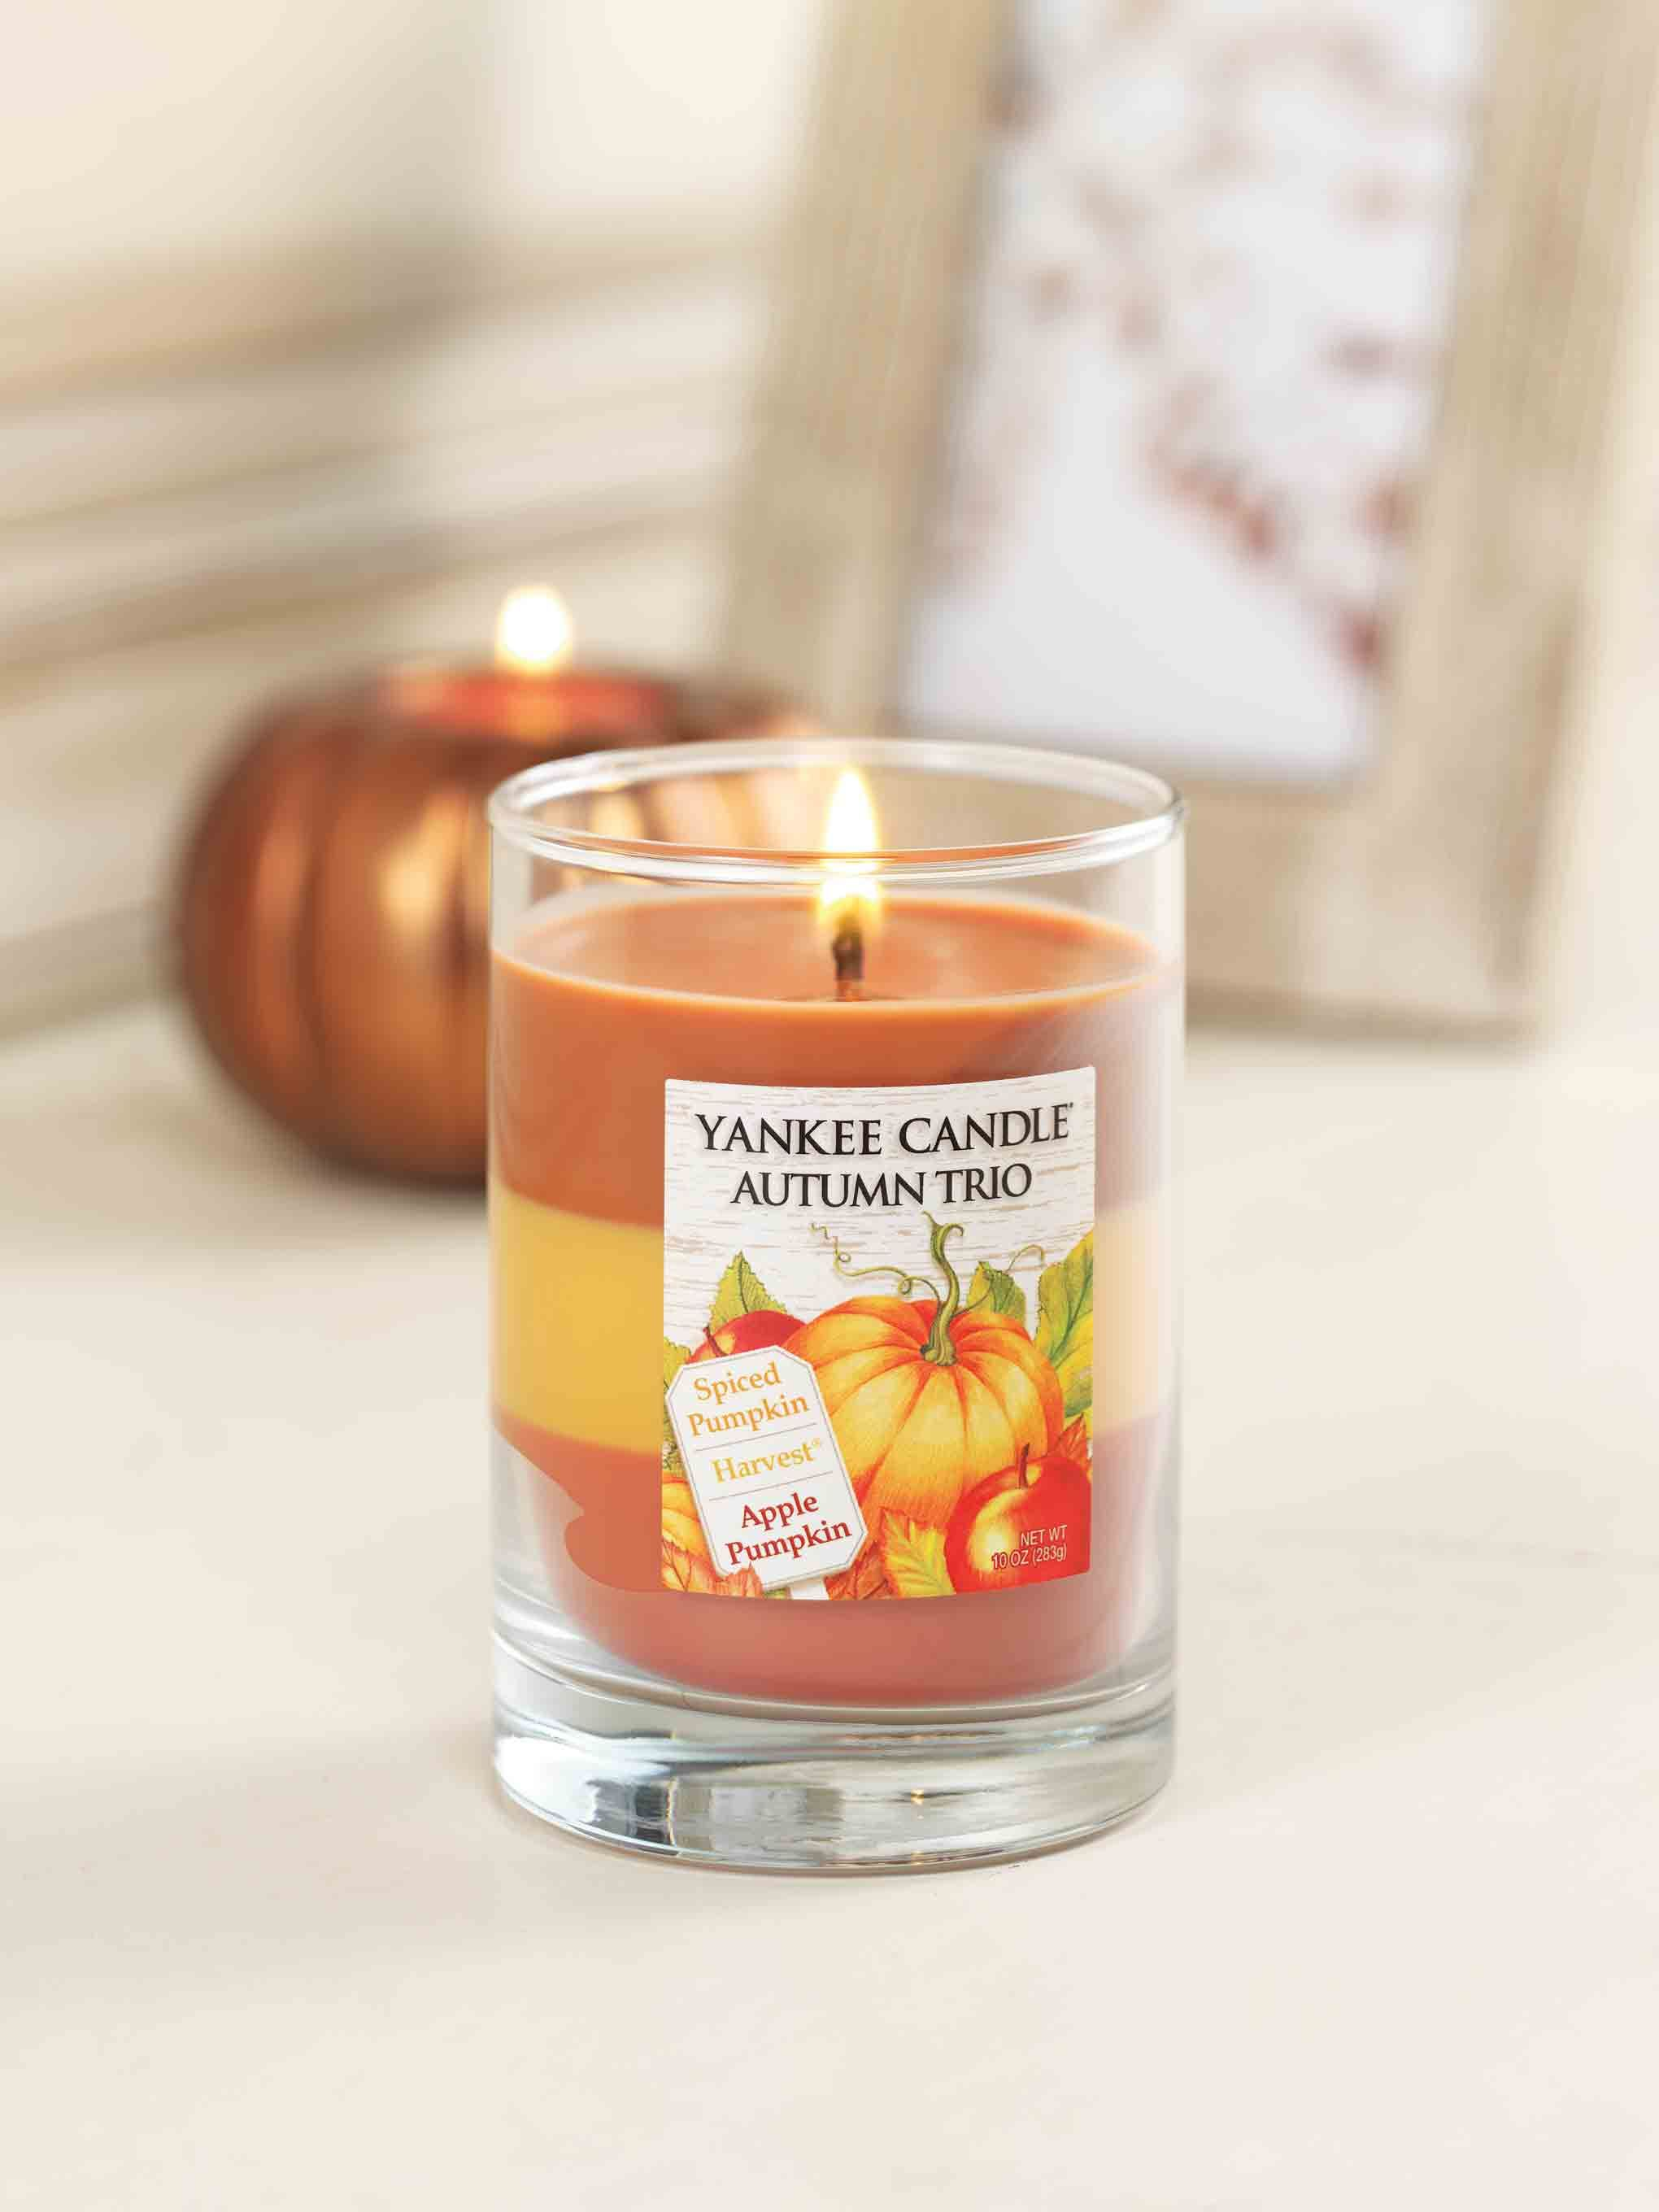 Canut decide on just one fall fragrance you donut have to our